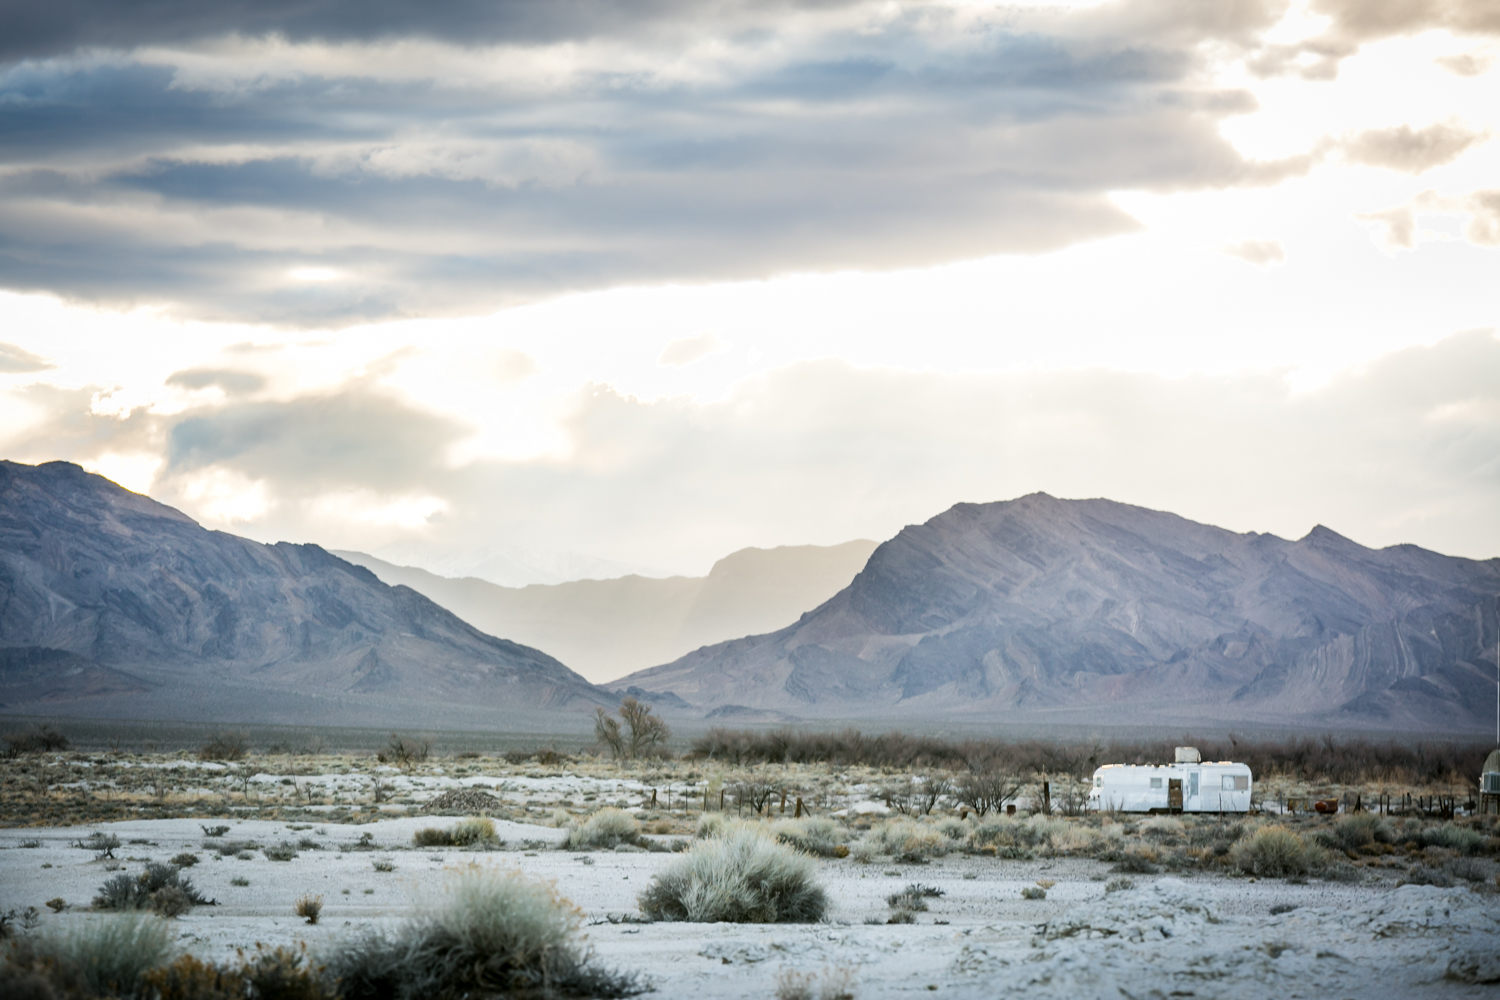 rv-sunrise-death-valley-california.jpg